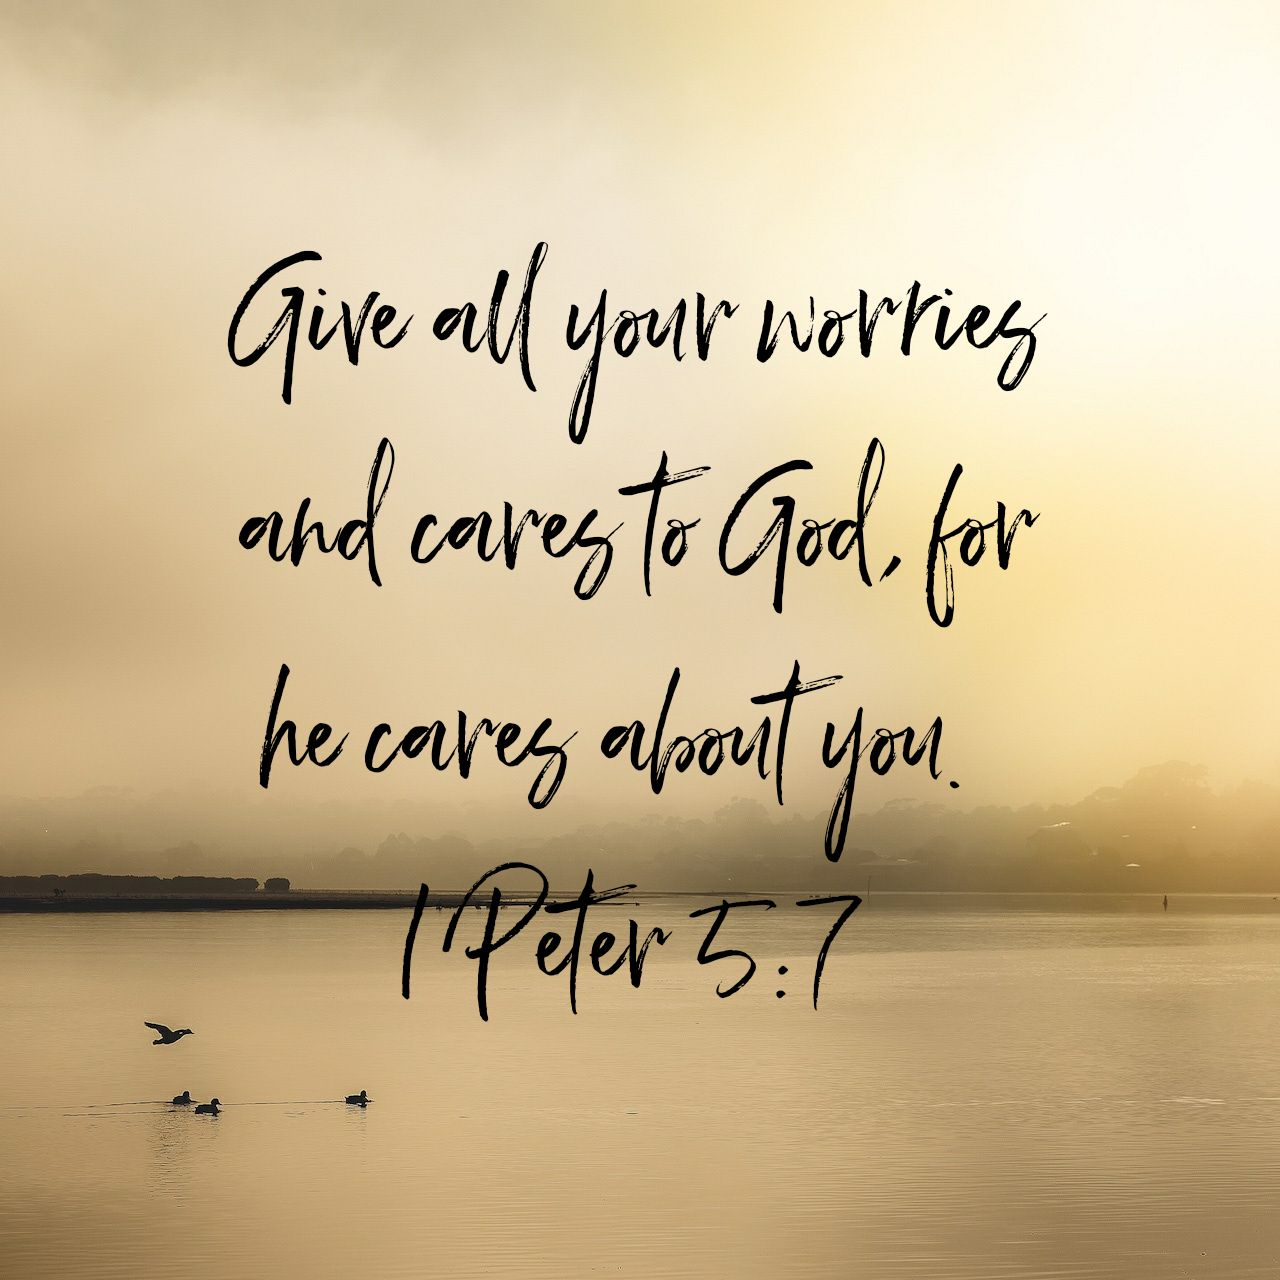 Give all your worries and cares to God, for he cares about you. - 1 Peter 5:7 NLT